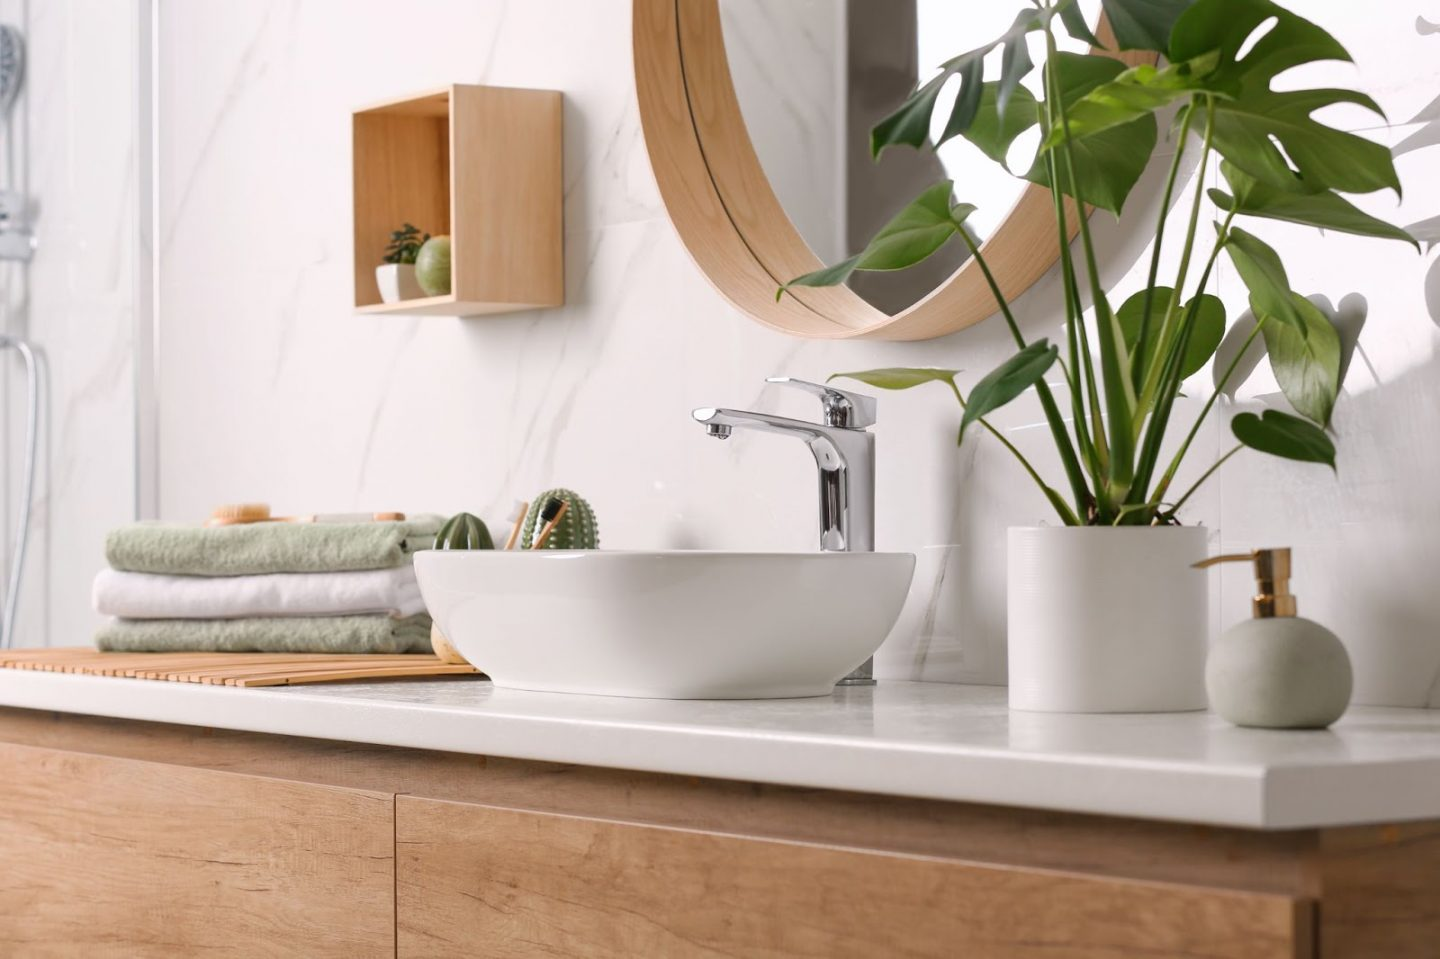 Renovating Your Bathroom. Here's What No One Tells You